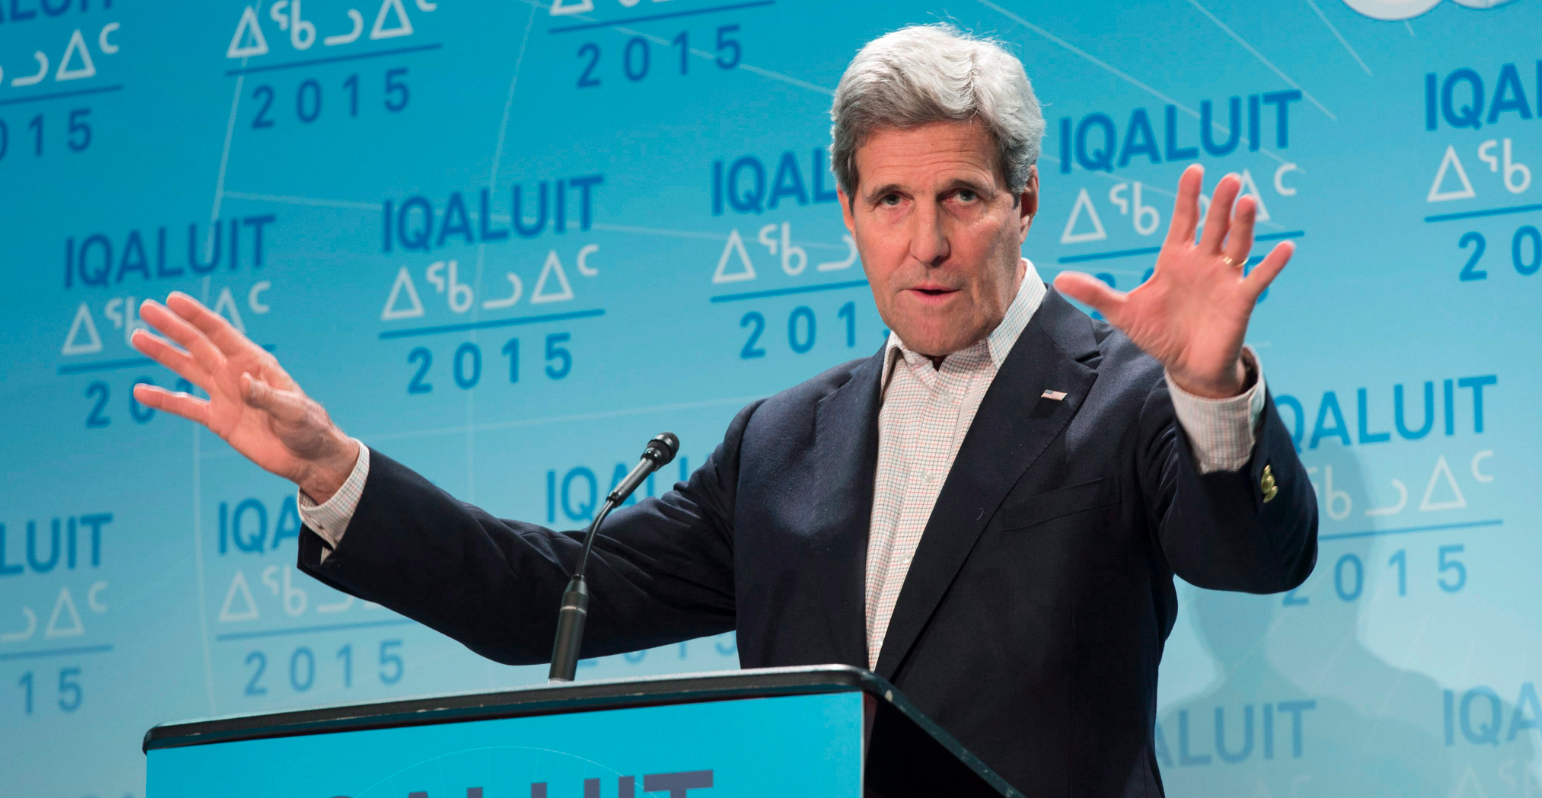 United States Secretary of State John Kerry responds to a question during a news conference at the Arctic Council Ministerial meeting Friday, April 24, 2015 in Iqaluit, Nunavut. (Paul Chiasson/The Canadian Press)